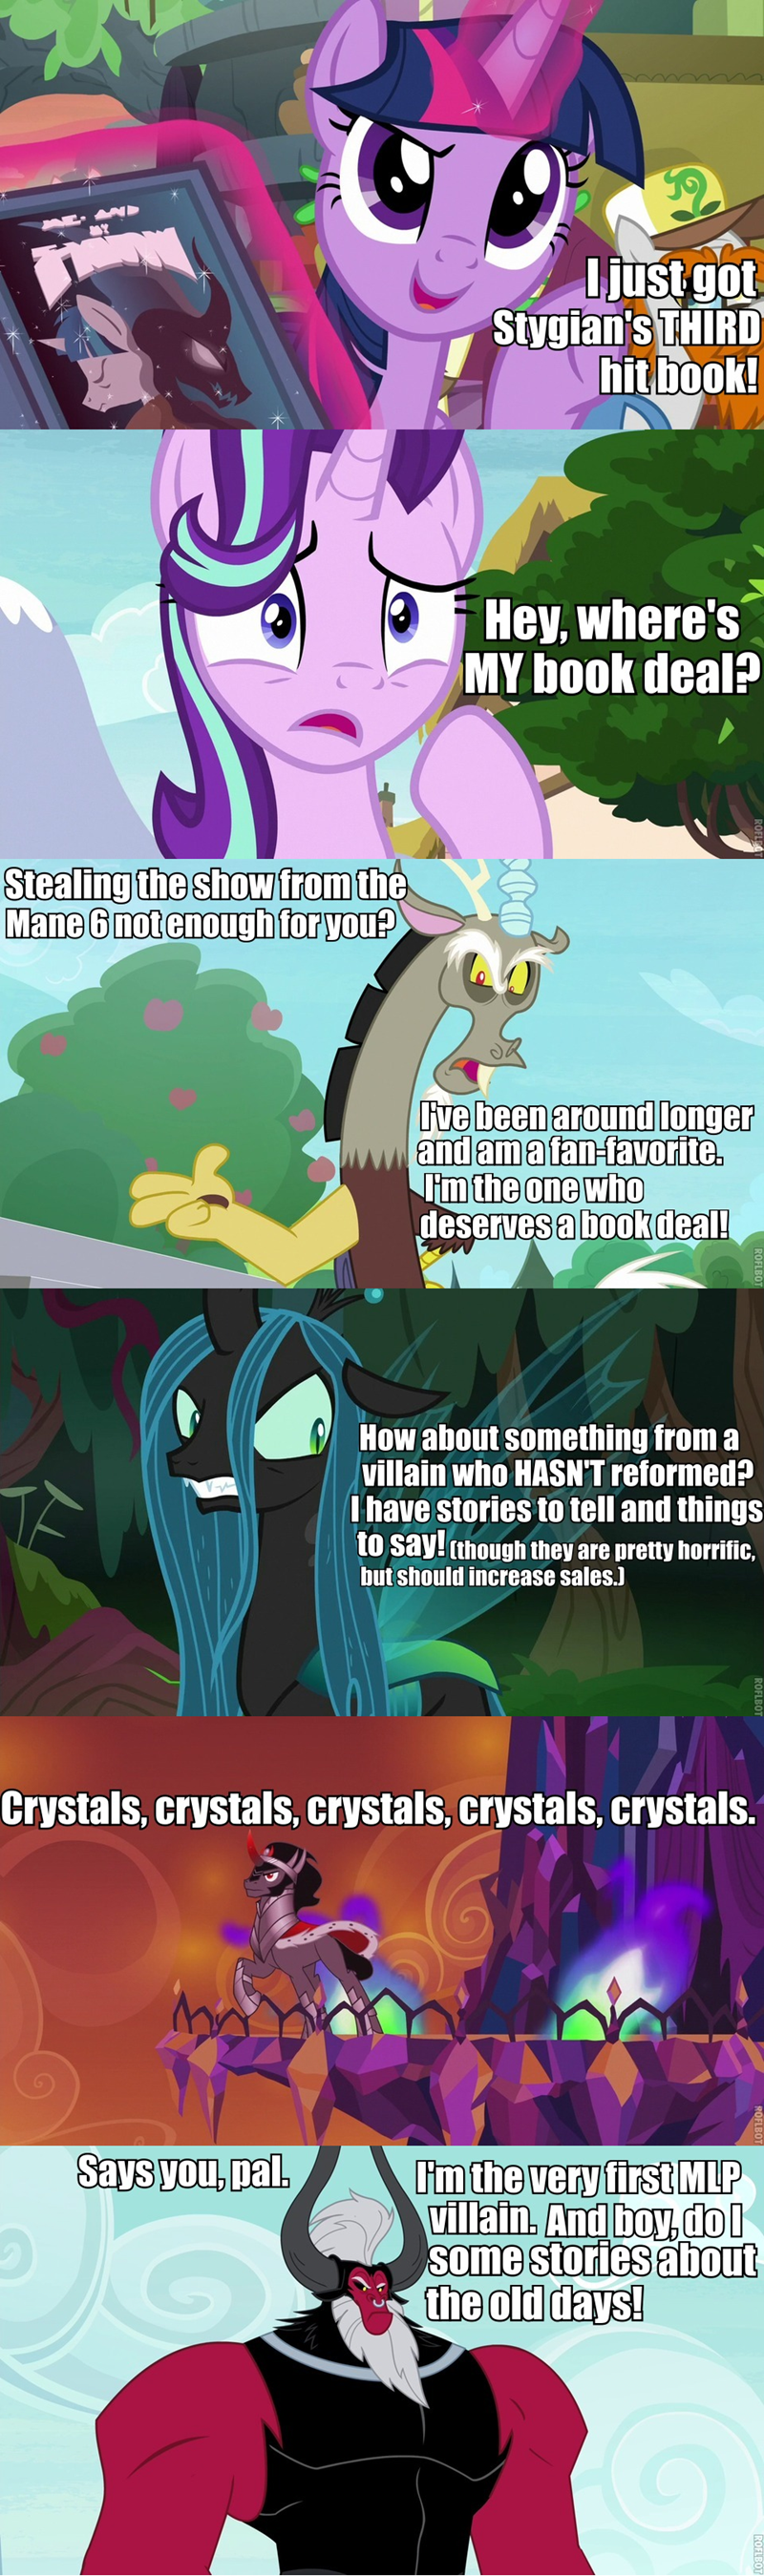 a matter of principals king sombra the crystal empire discord starlight glimmer twilight sparkle screencap the end in friend tirek the mean six sammyw28 twilight's kingdom chrysalis comic a rockhoof and a hard place changelings - 9219681792